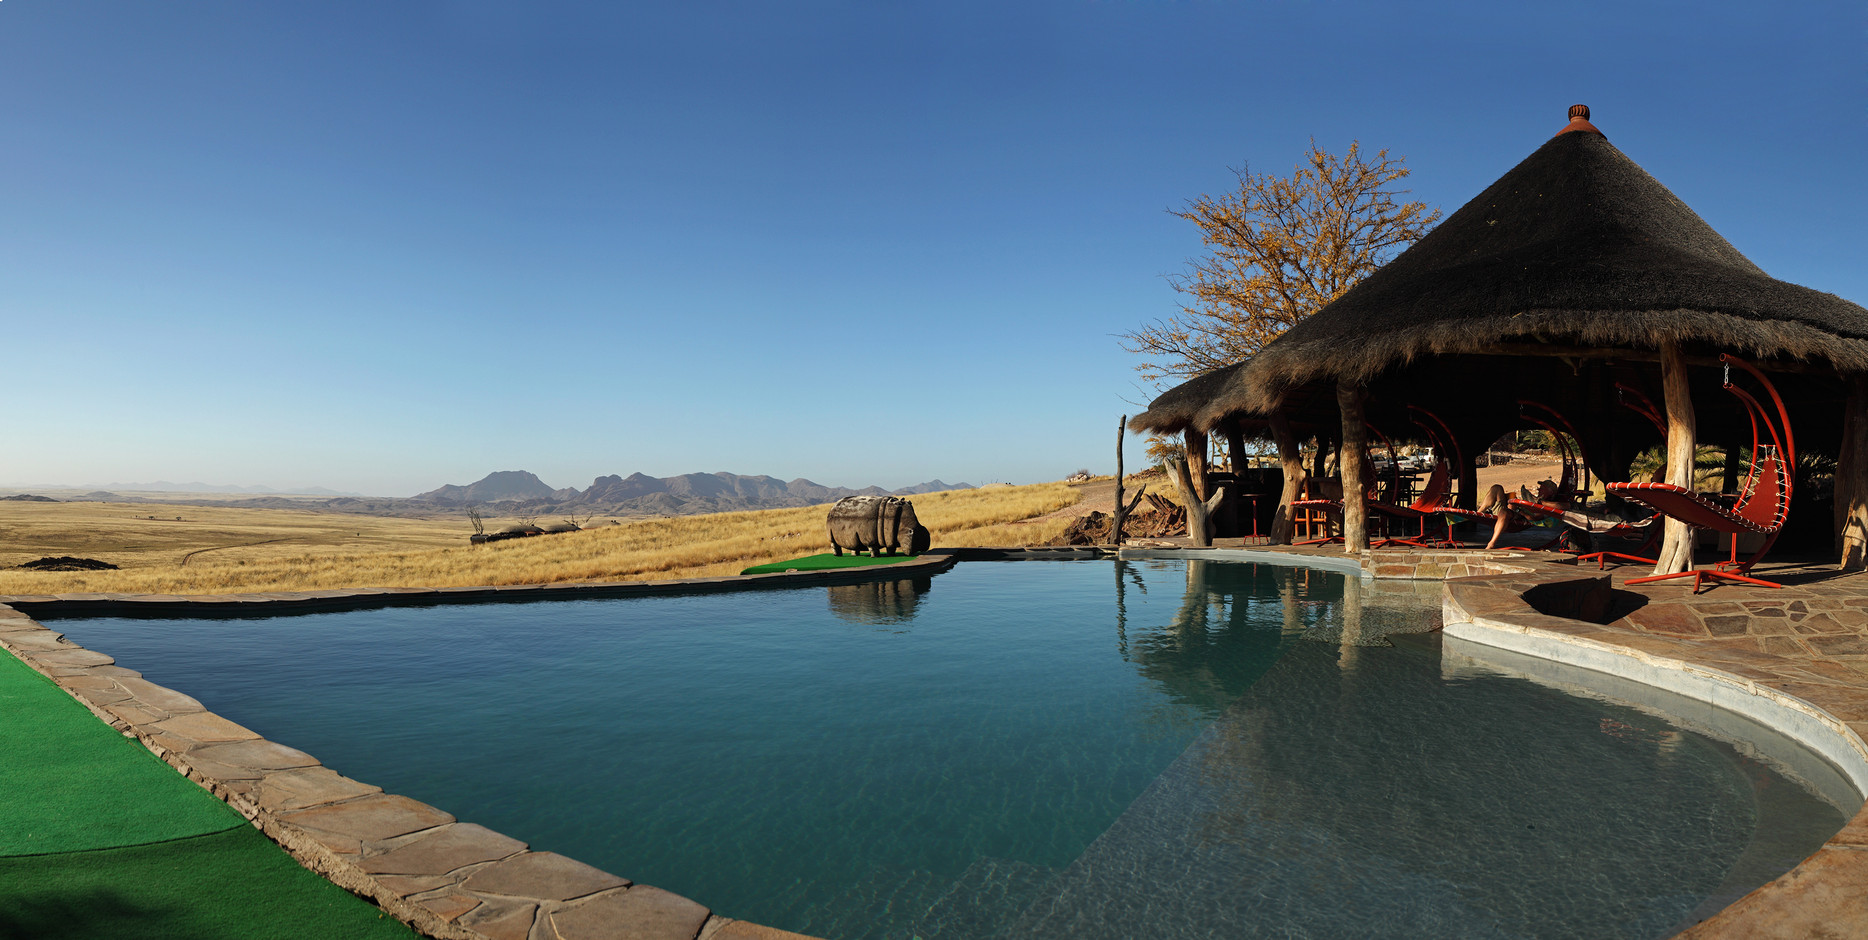 kat_hotels and lodges_0035.jpg